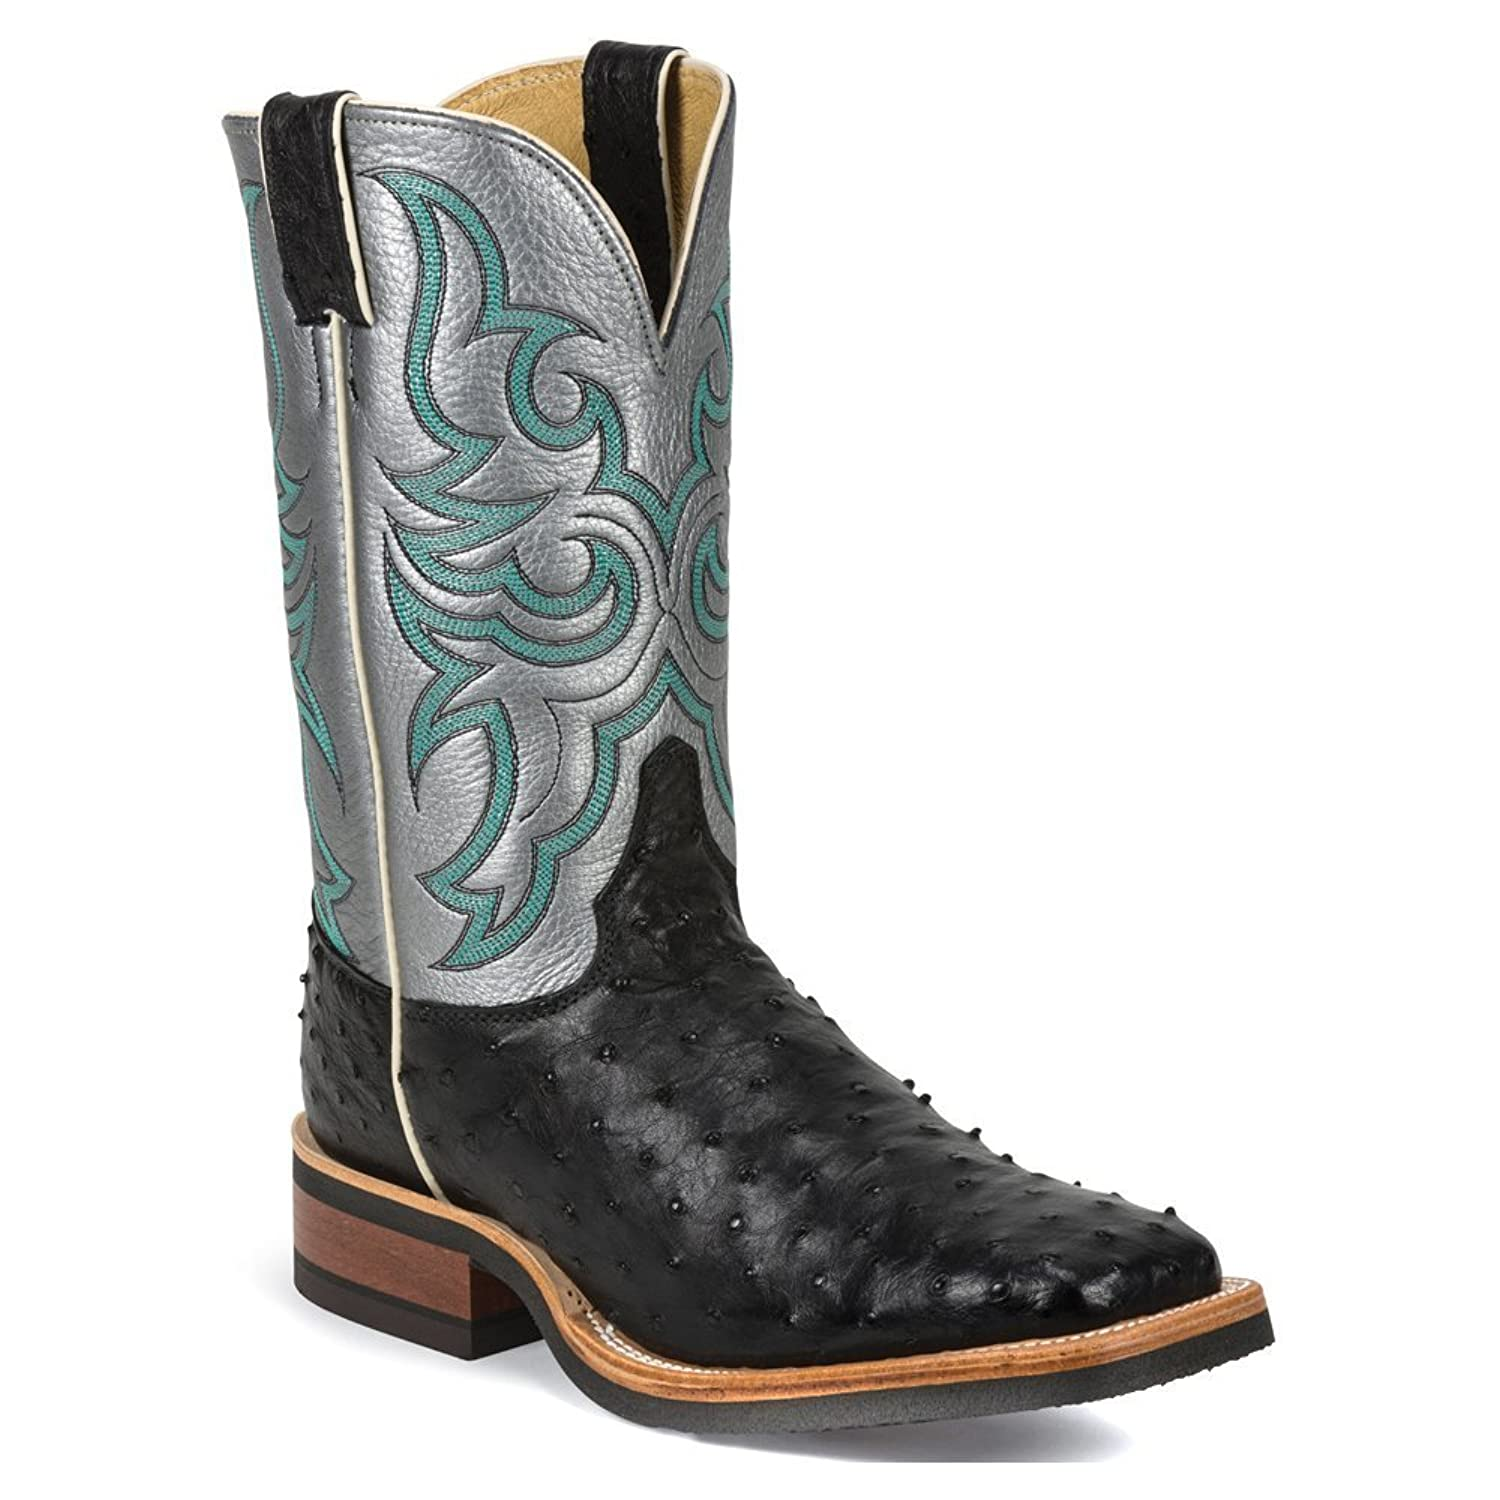 Justin Men's Full Quill Ostrich Bronze Florention Cowboy Boot Square Toe - 8579